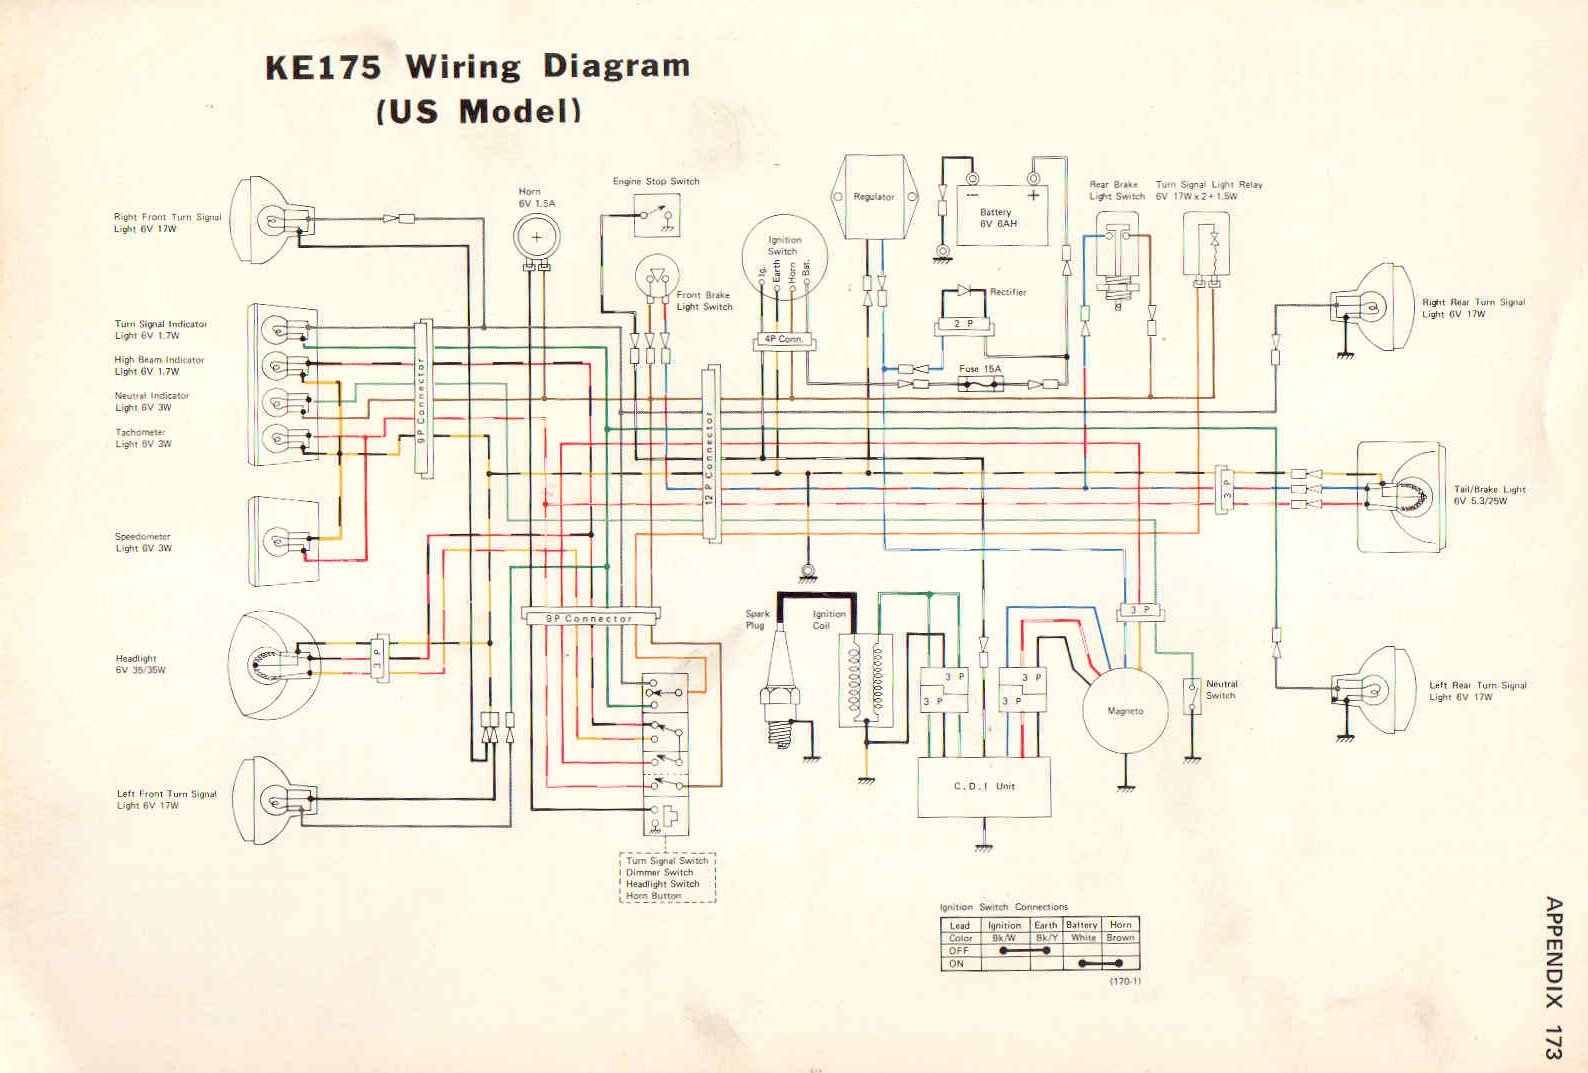 ke175 wiring diagram schematics wiring diagrams \u2022 service operation diagram how to motorcycle repair 76 77 78 ke175 wiring diagram rh howtomotorcyclerepair com 1977 kawasaki ke 175 wiring diagram kawasaki ke175